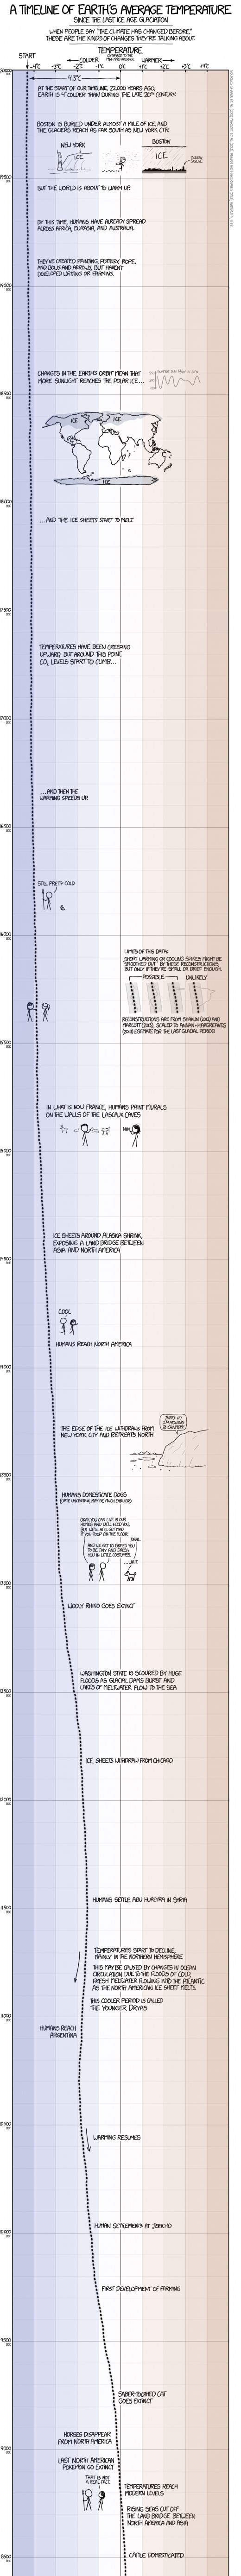 """First half of """"A Timeline of Earth's Average Temperature"""""""